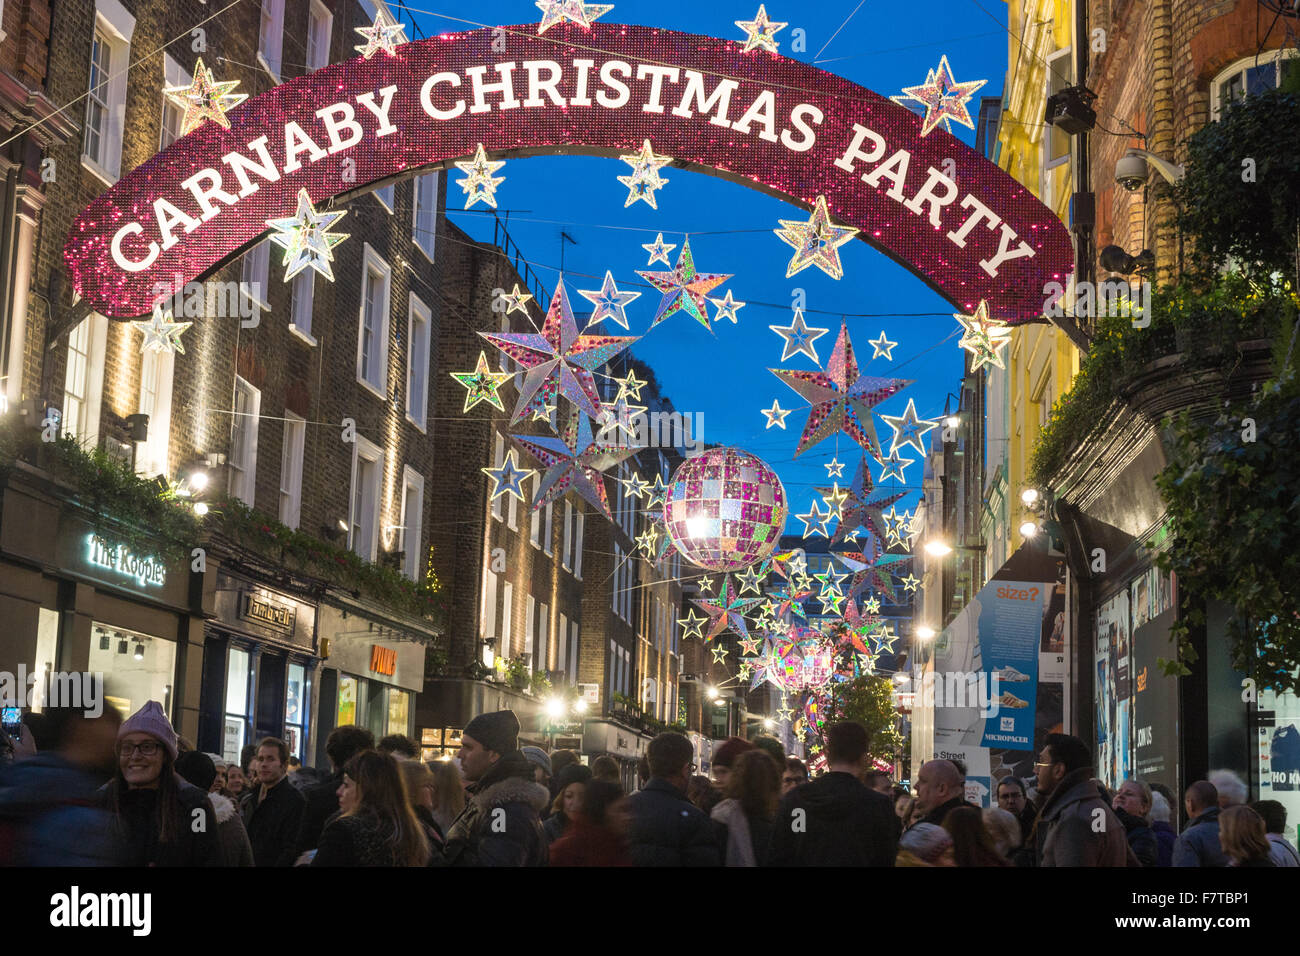 christmas decorations london carnaby street christmas london 2016 stock image - London Christmas Decorations